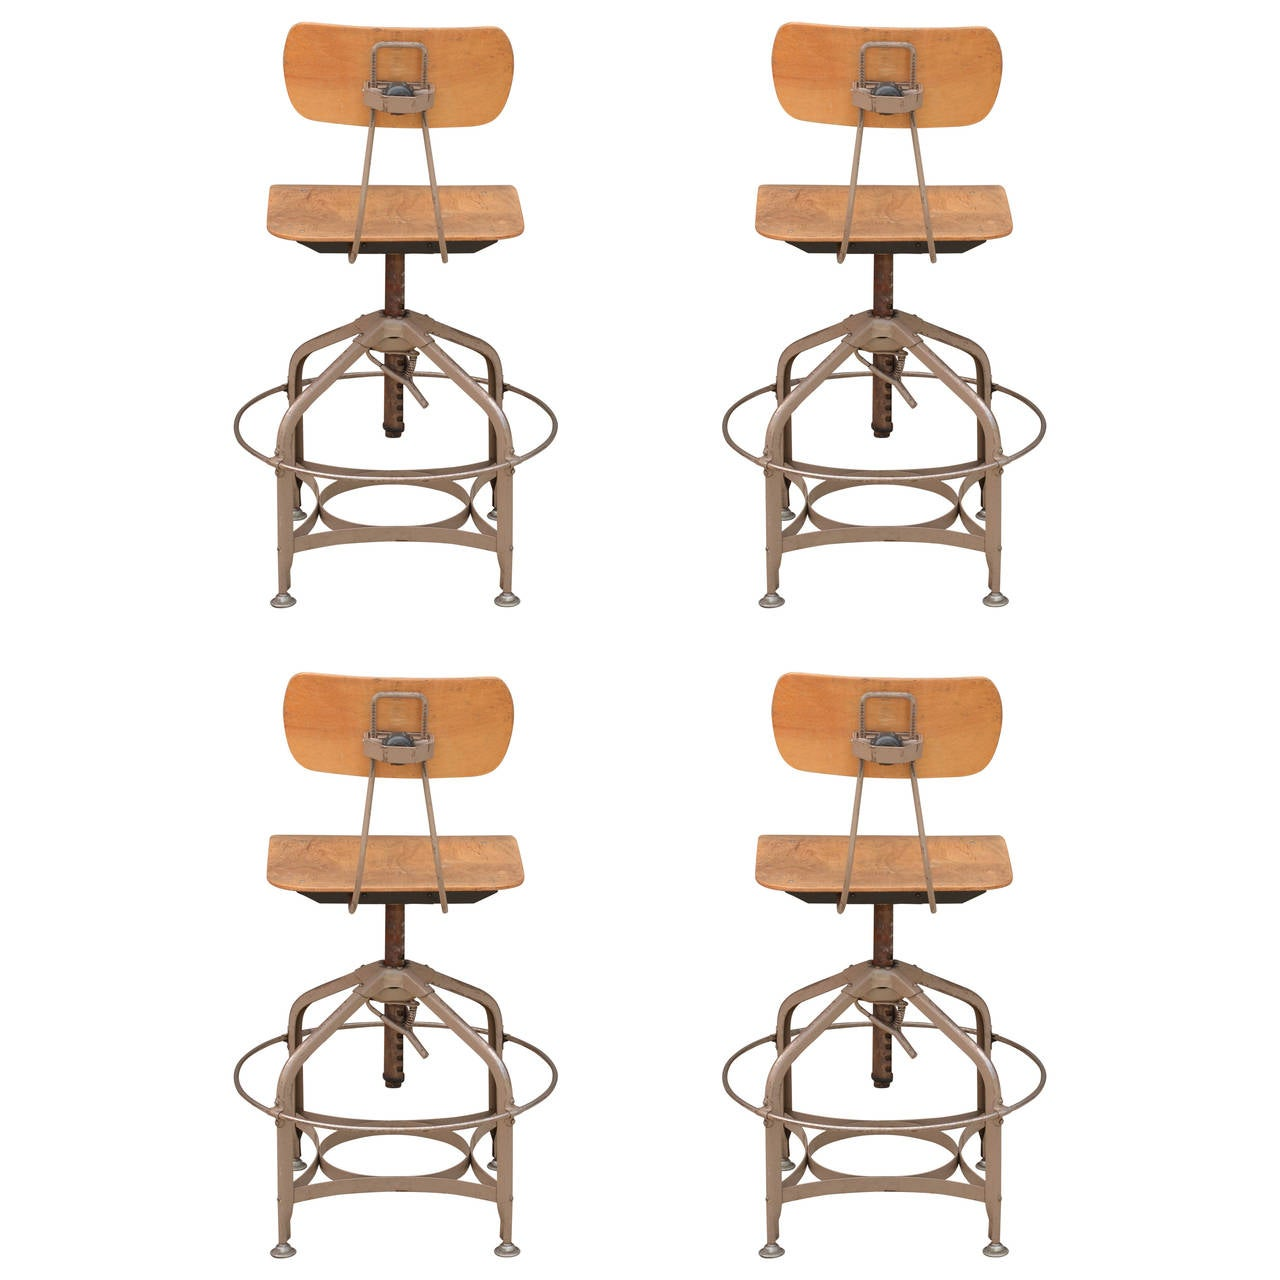 Rare set of 4 Vintage Adjustable Swiveling Toledo Bar  : 3093582l from www.1stdibs.com size 1280 x 1280 jpeg 102kB